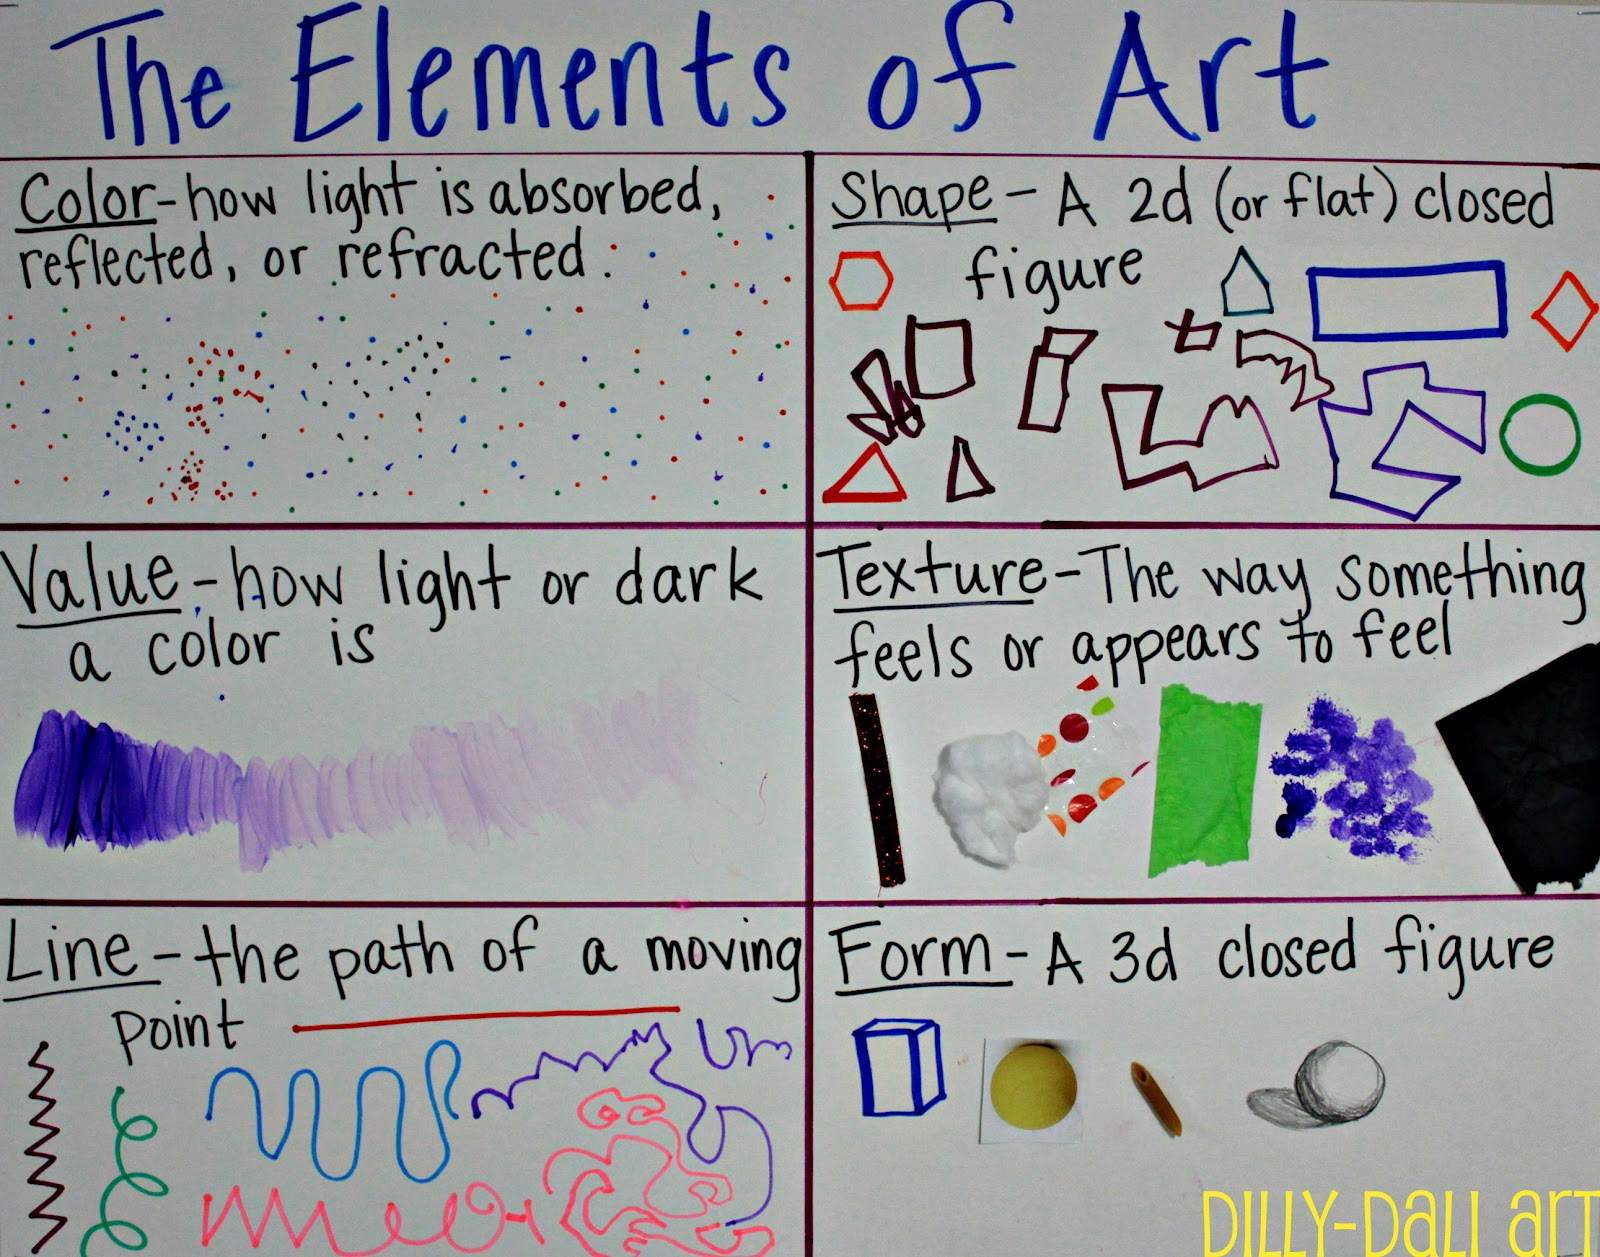 7 Elements Of Art : Dilly dali art elements of poster